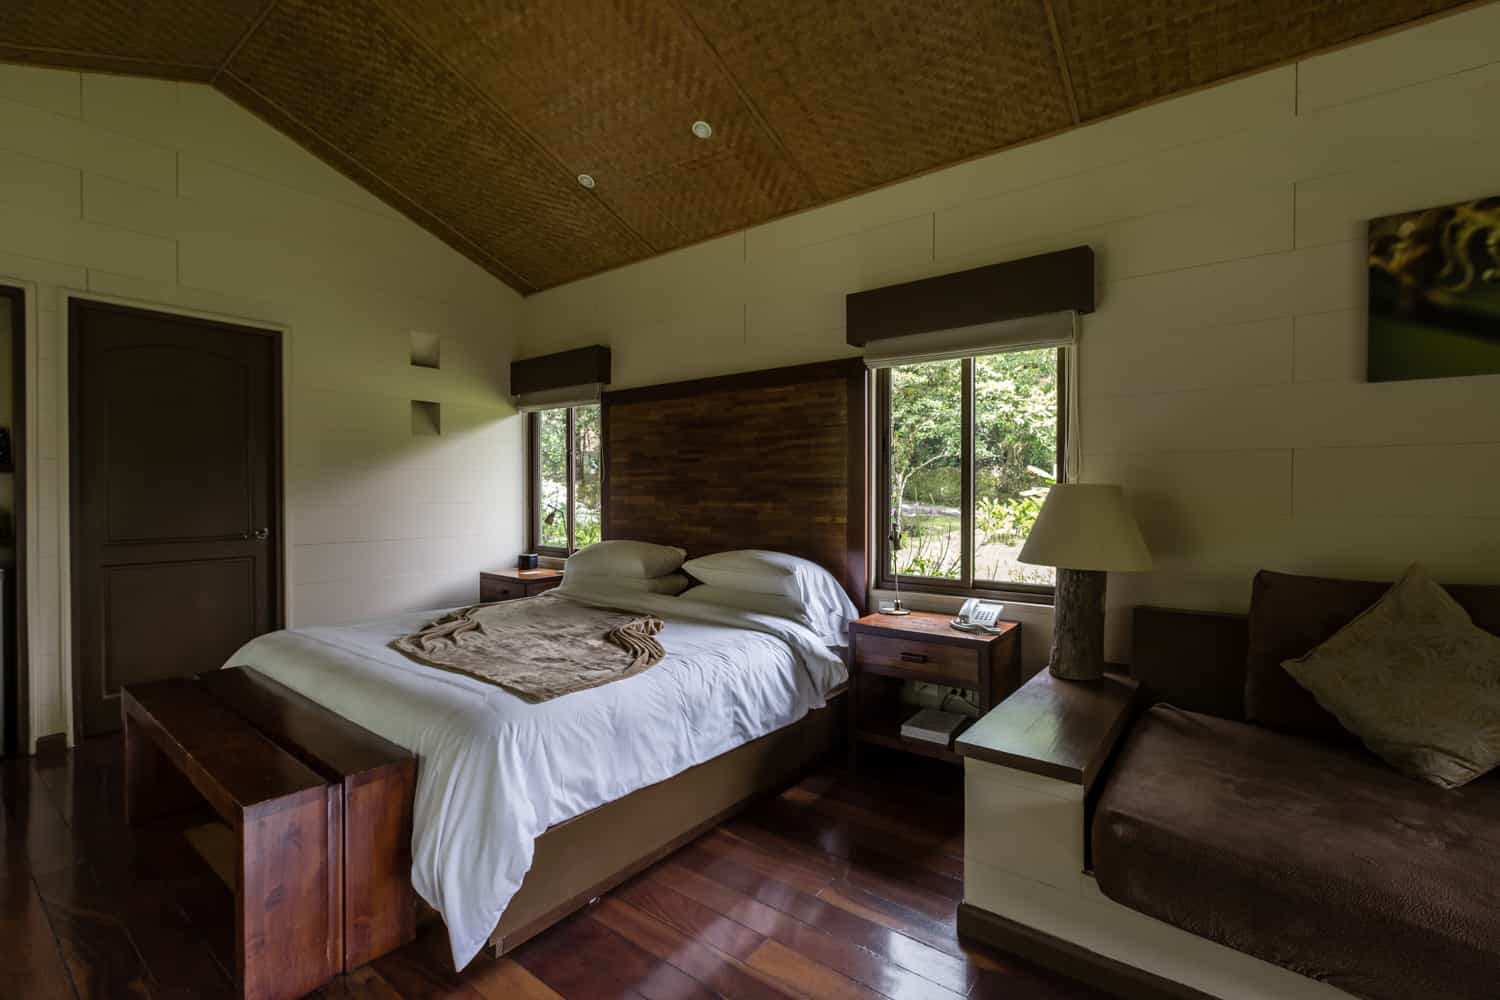 Honeymoon bed for newlyweds with view of cloudforest.